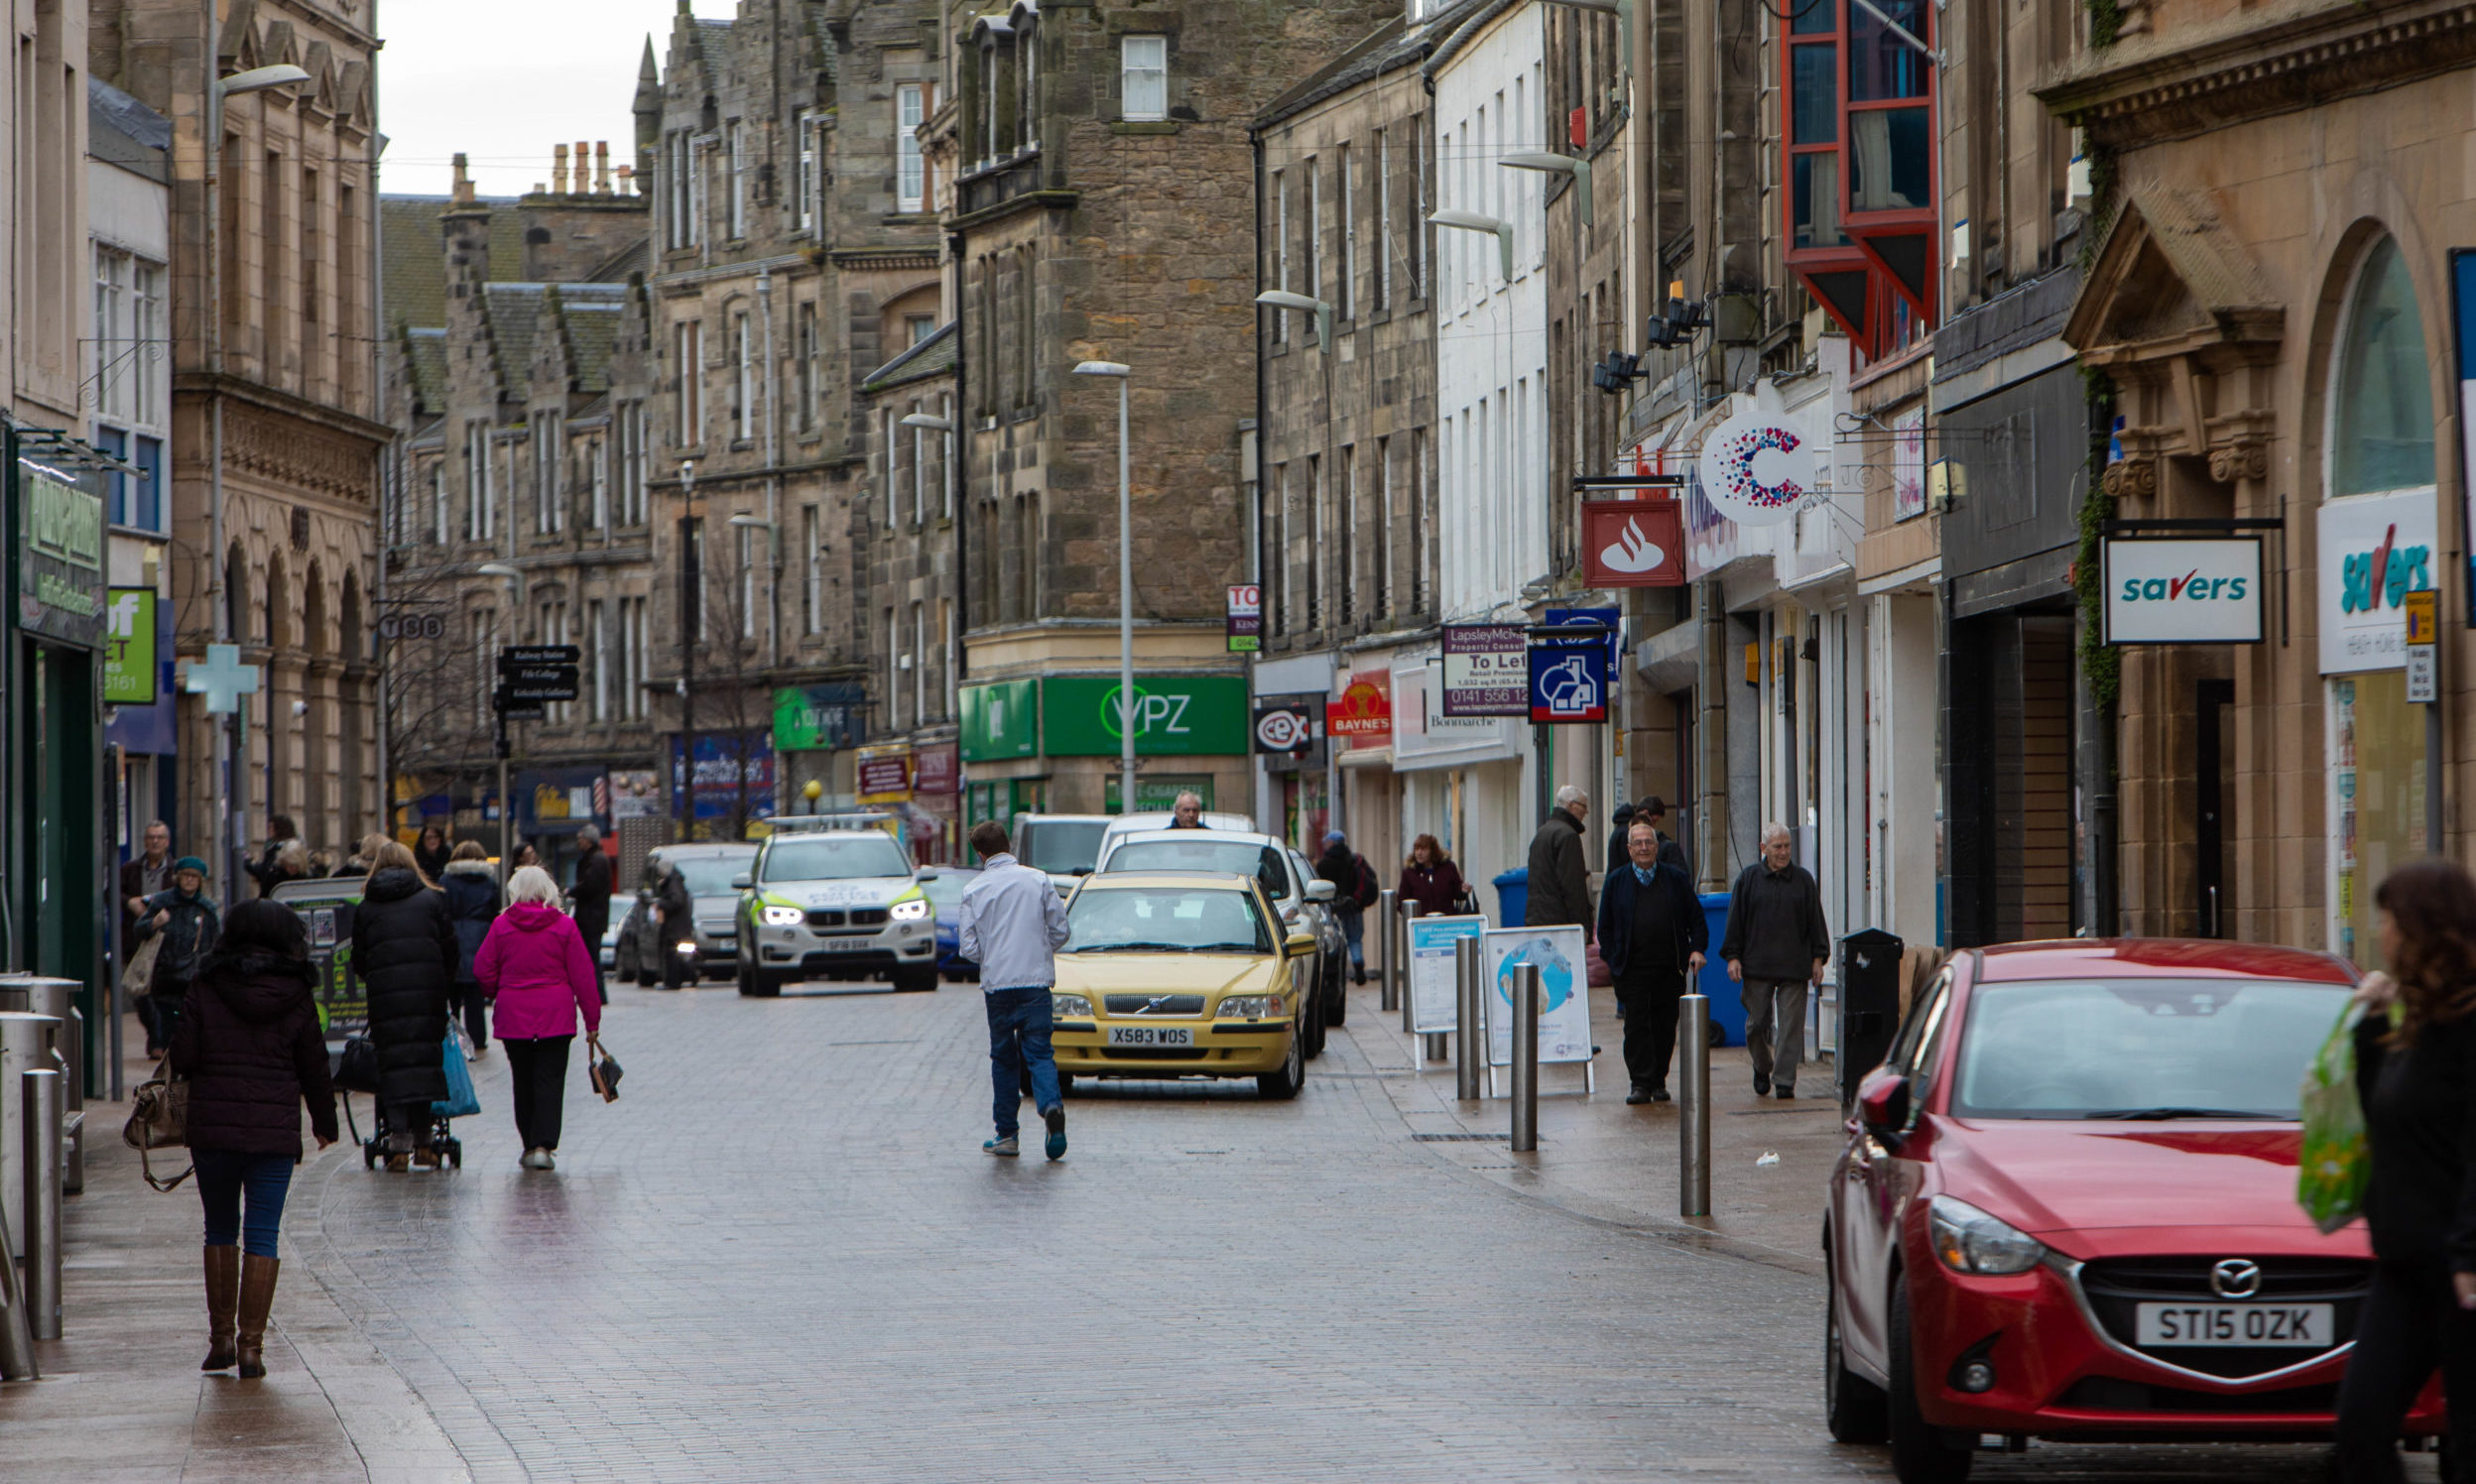 Quiz is located on Kirkcaldy High Street pictured).